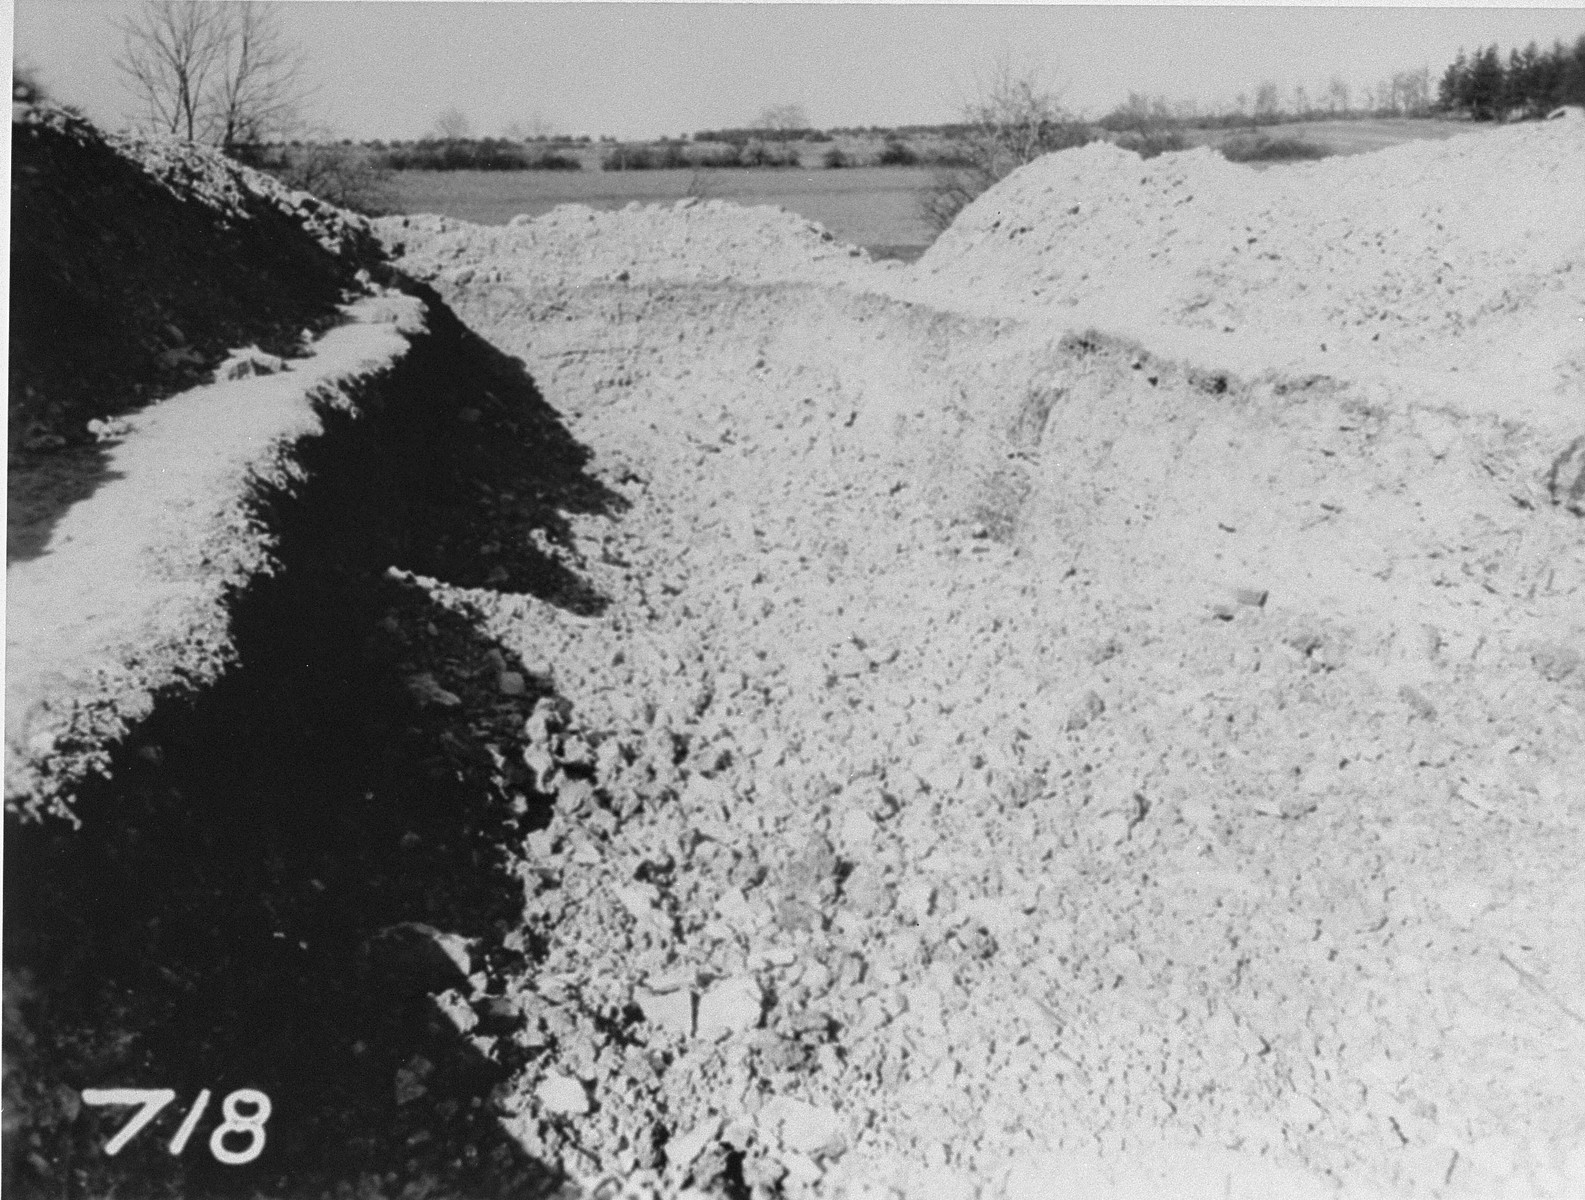 View of a mass grave in the Ohrdruf concentration camp from which 2,000 corpses were removed for proper burial.